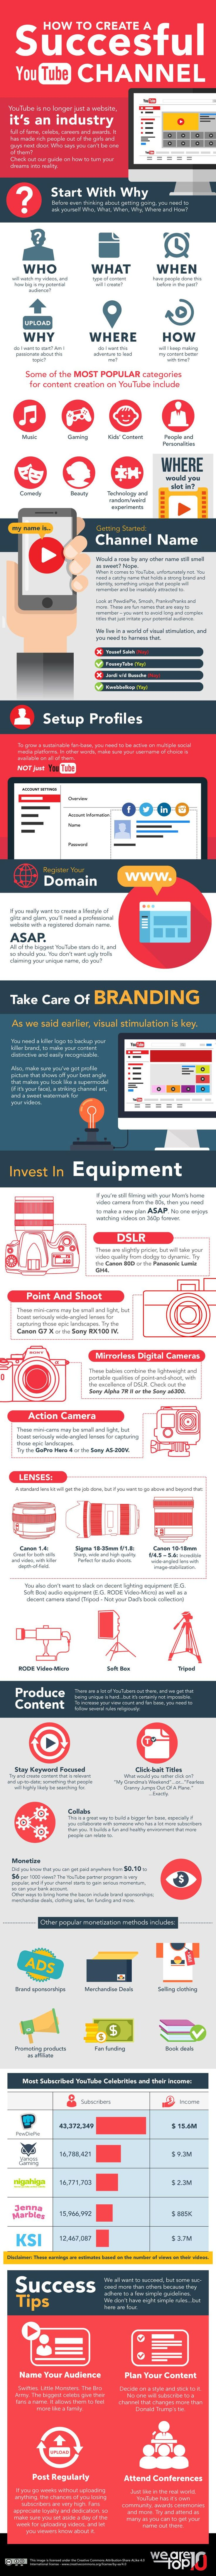 How To Start A Successful YouTube Channel [Infographic]